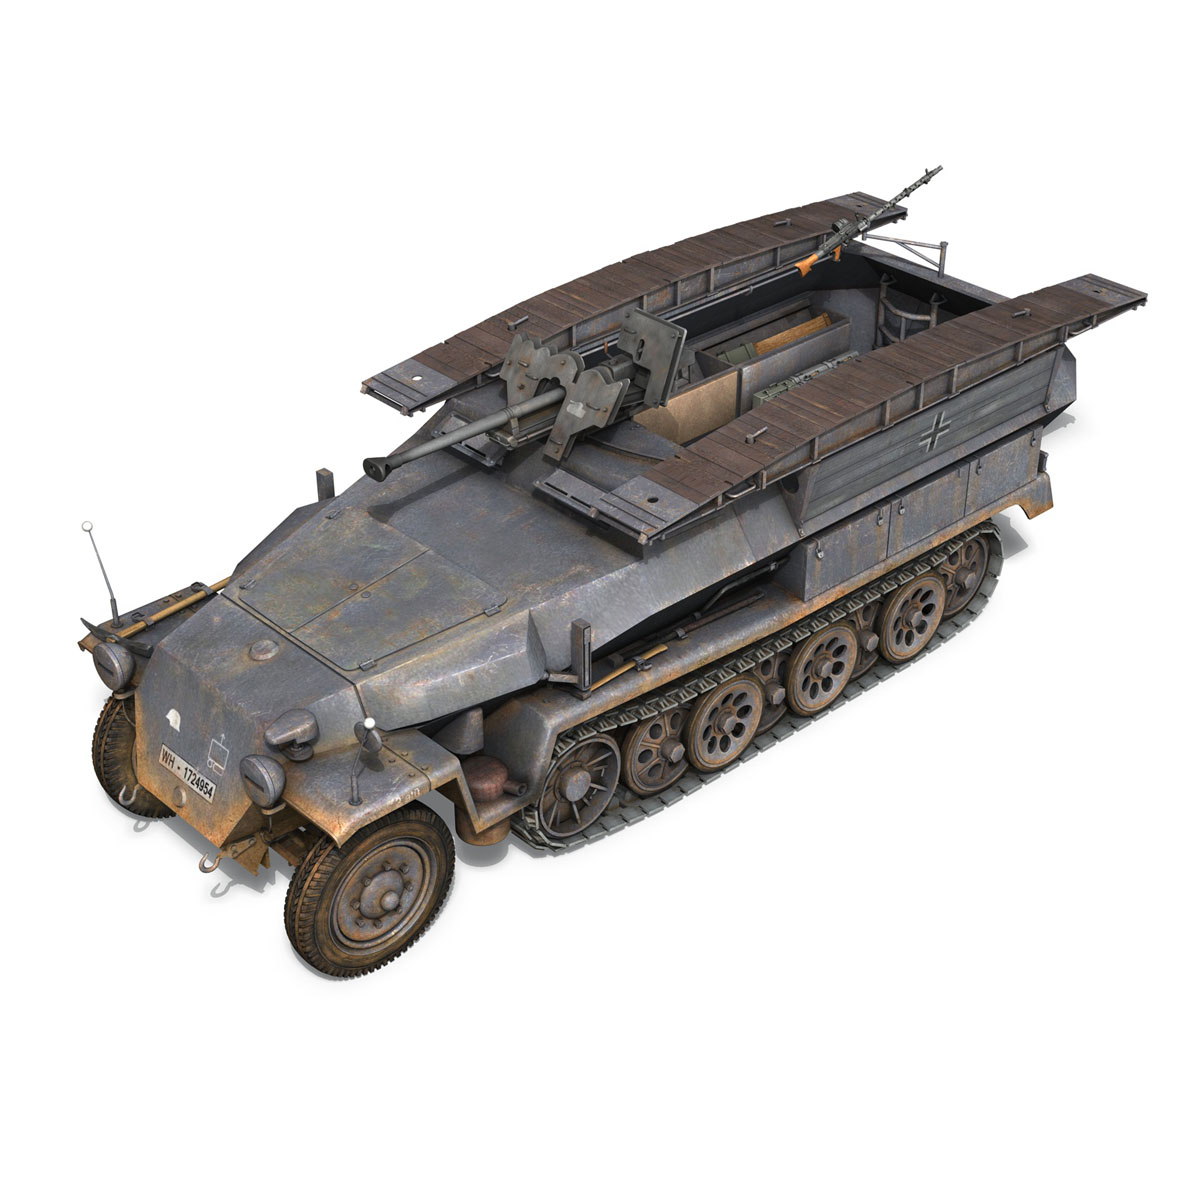 sd.kfz 251/7 ausf.c – pioneer assault bridge 3d model 3ds fbx c4d lwo obj 201525